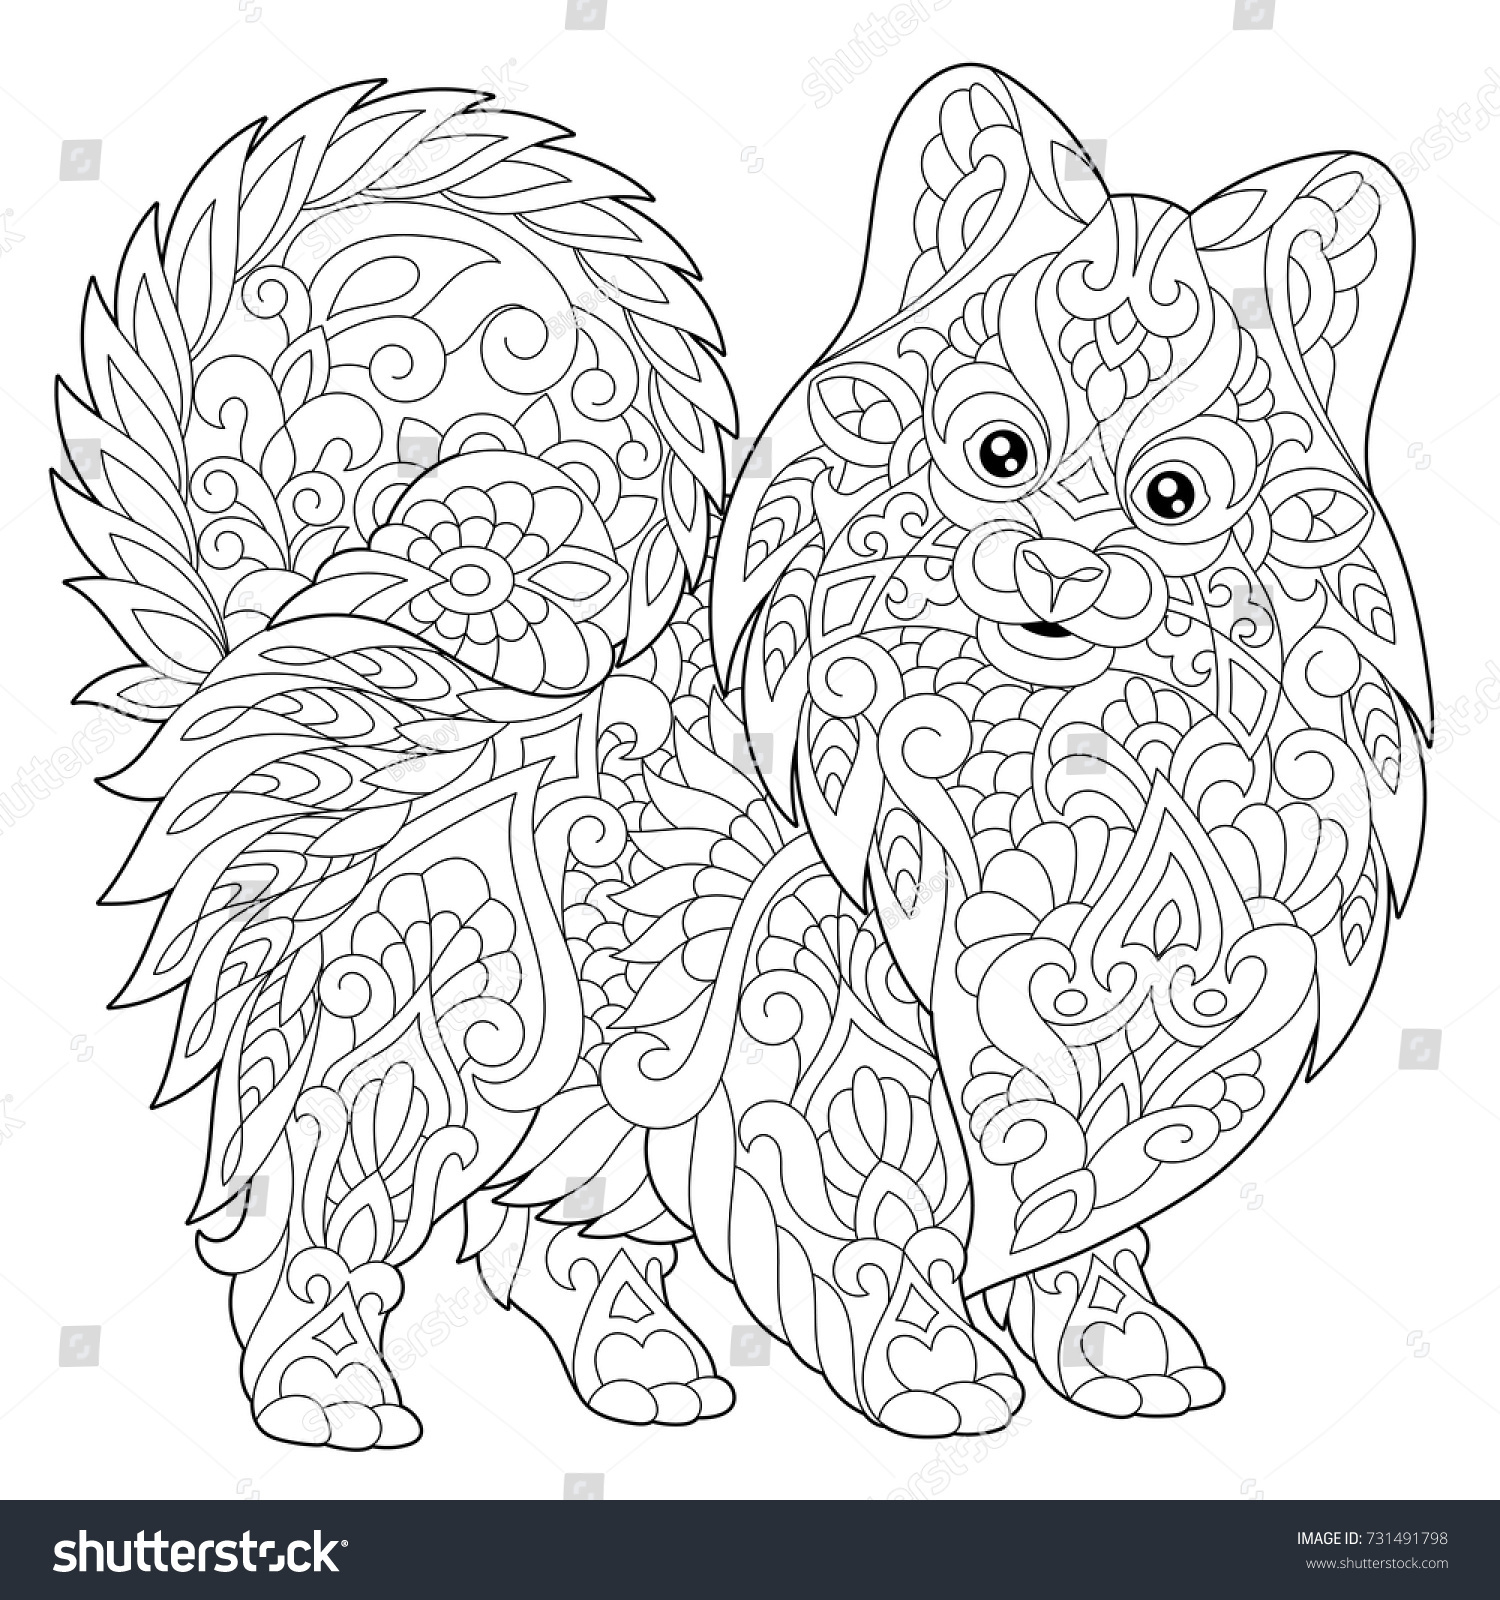 coloring page pomeranian dog symbol 2018 stock vector 731491798